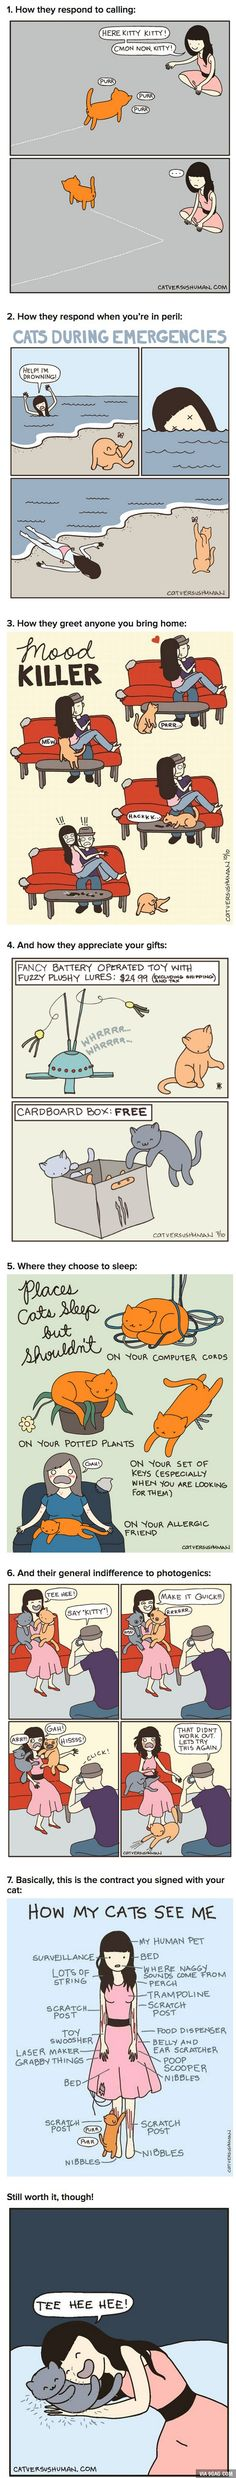 7 Least Helpful Cat Habits